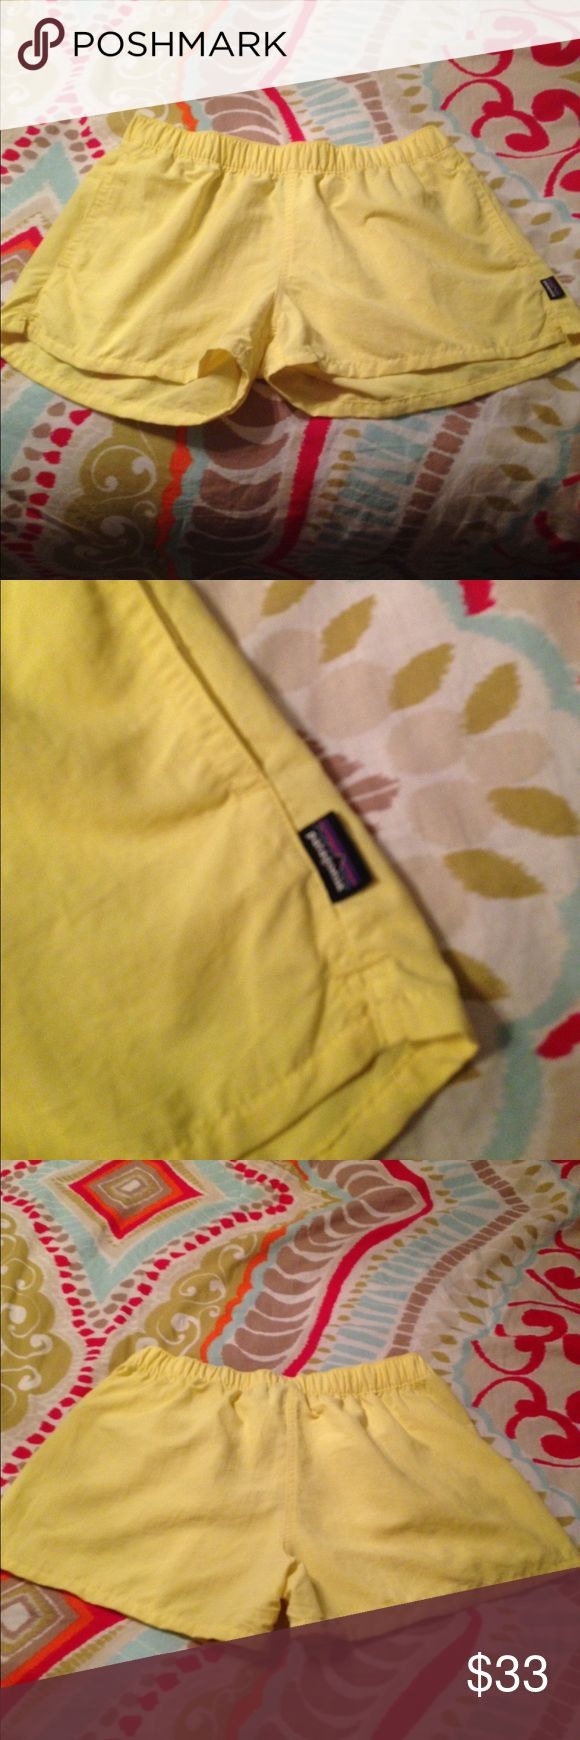 "Yellow Patagonia ""Baggies"" Shorts Never worn! Pretty yellow color! Has pockets! 2.5"" inseam! Women's Medium Patagonia Shorts"